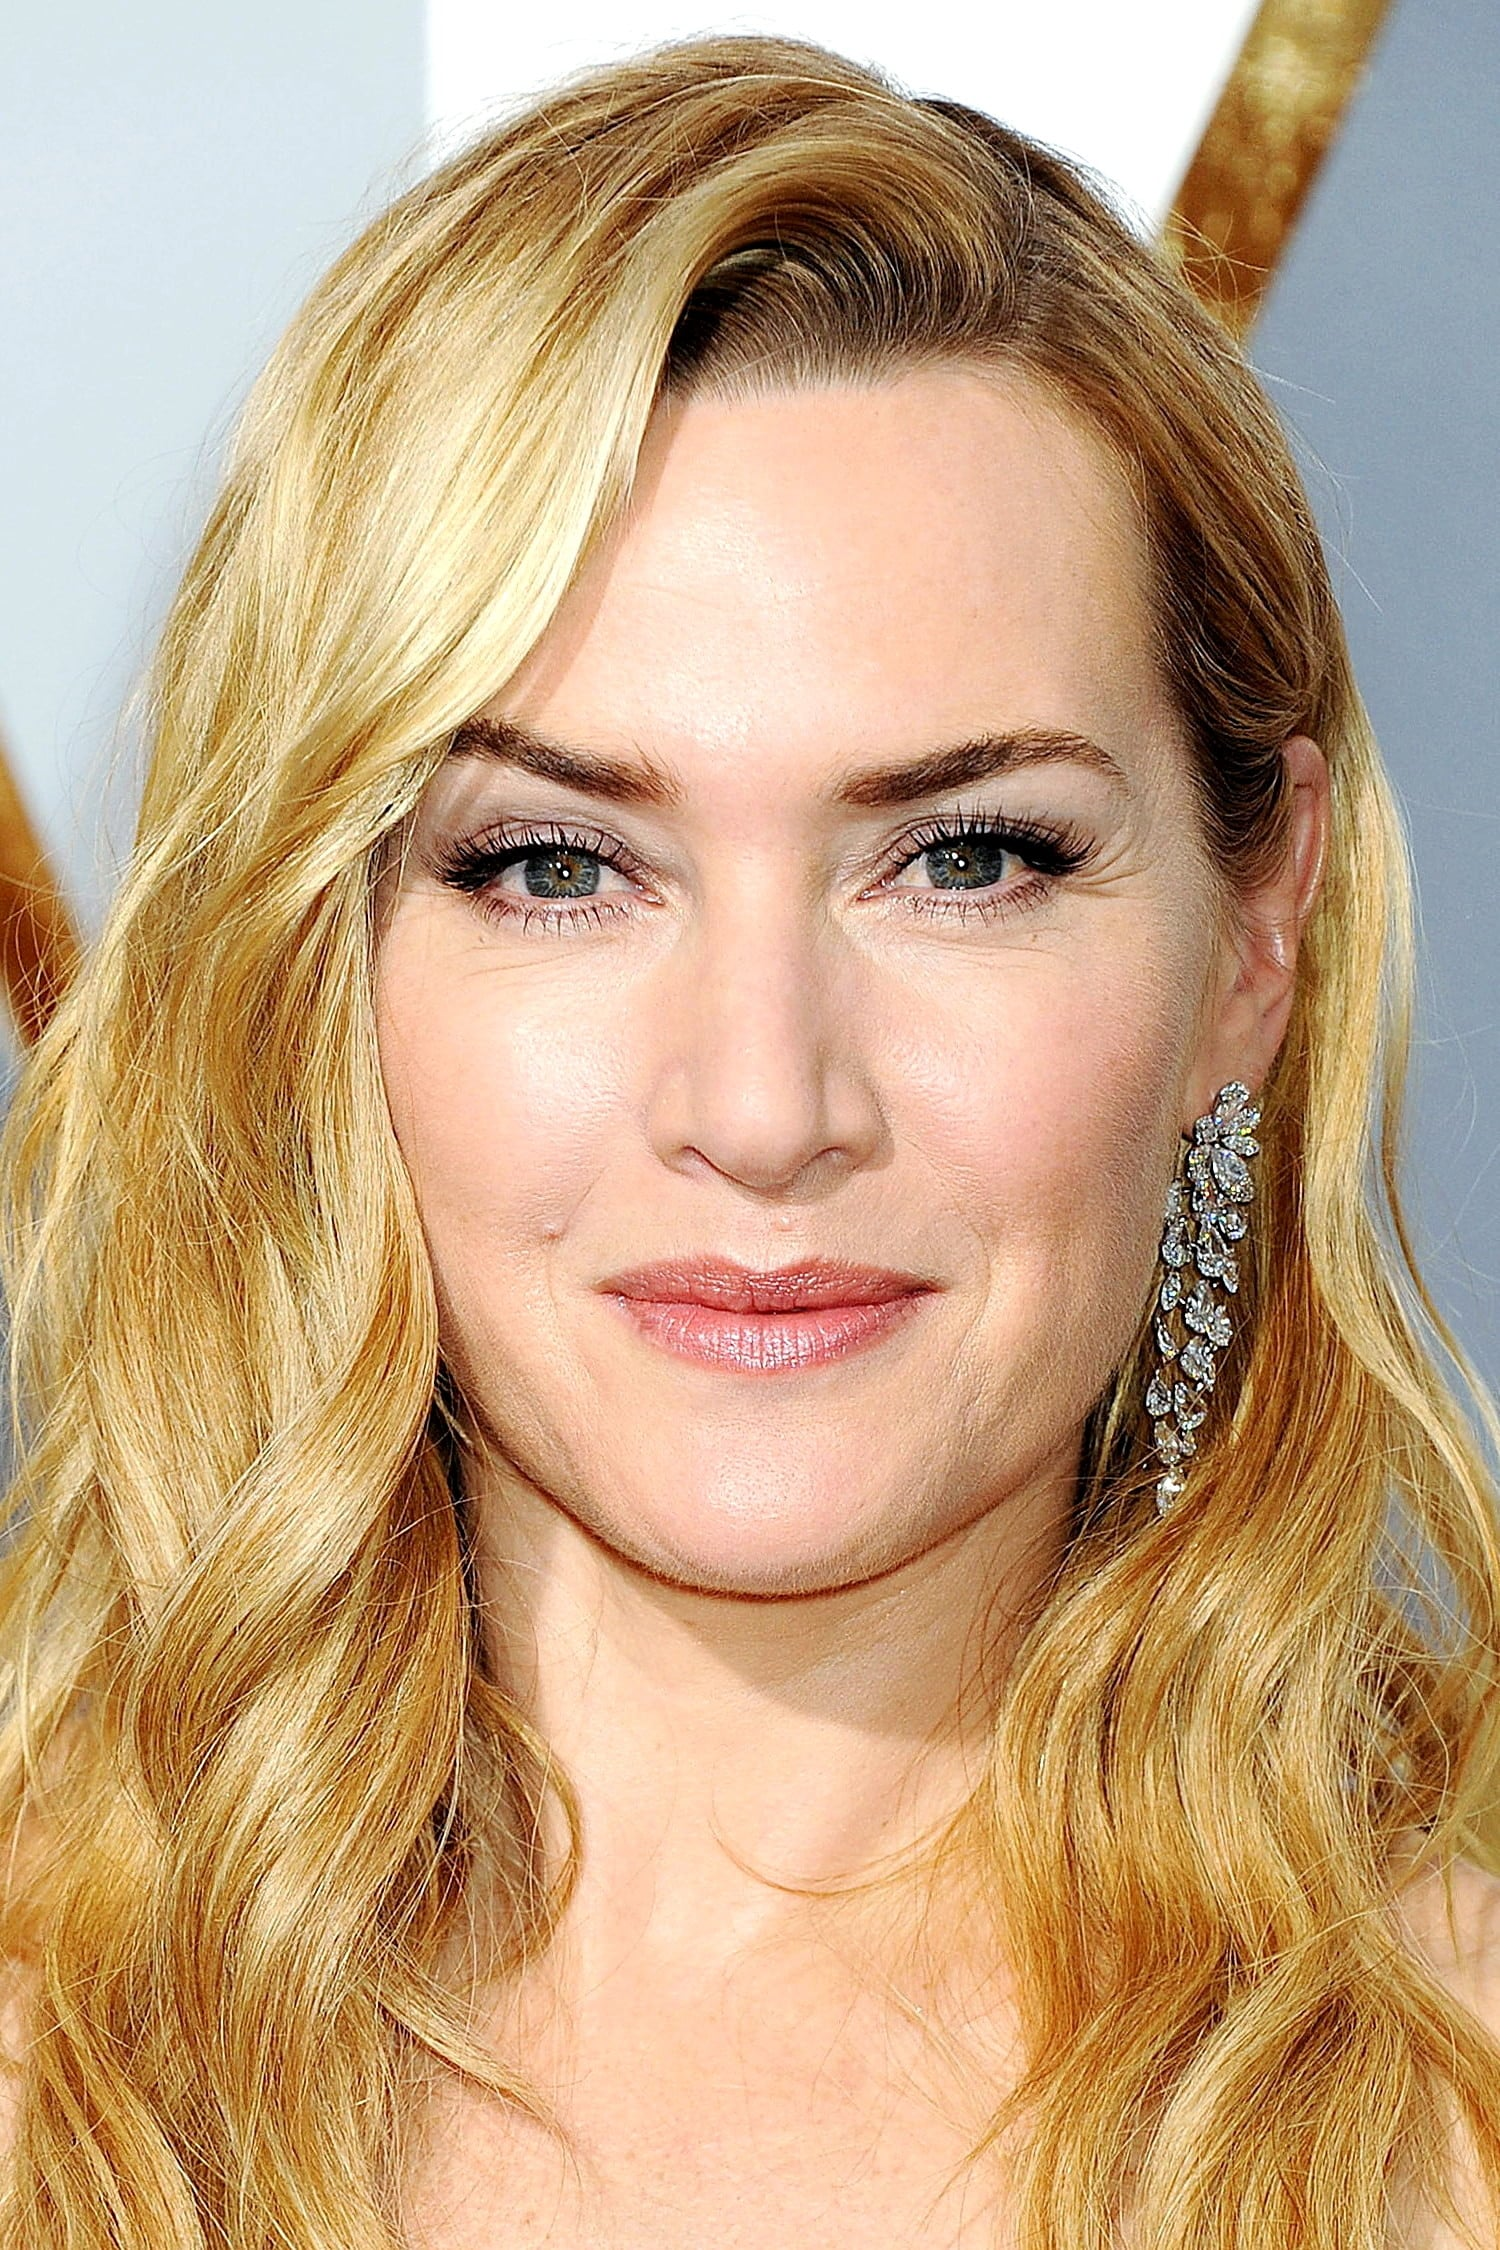 Kate Winslet - Profile Images — The Movie Database (TMDb)